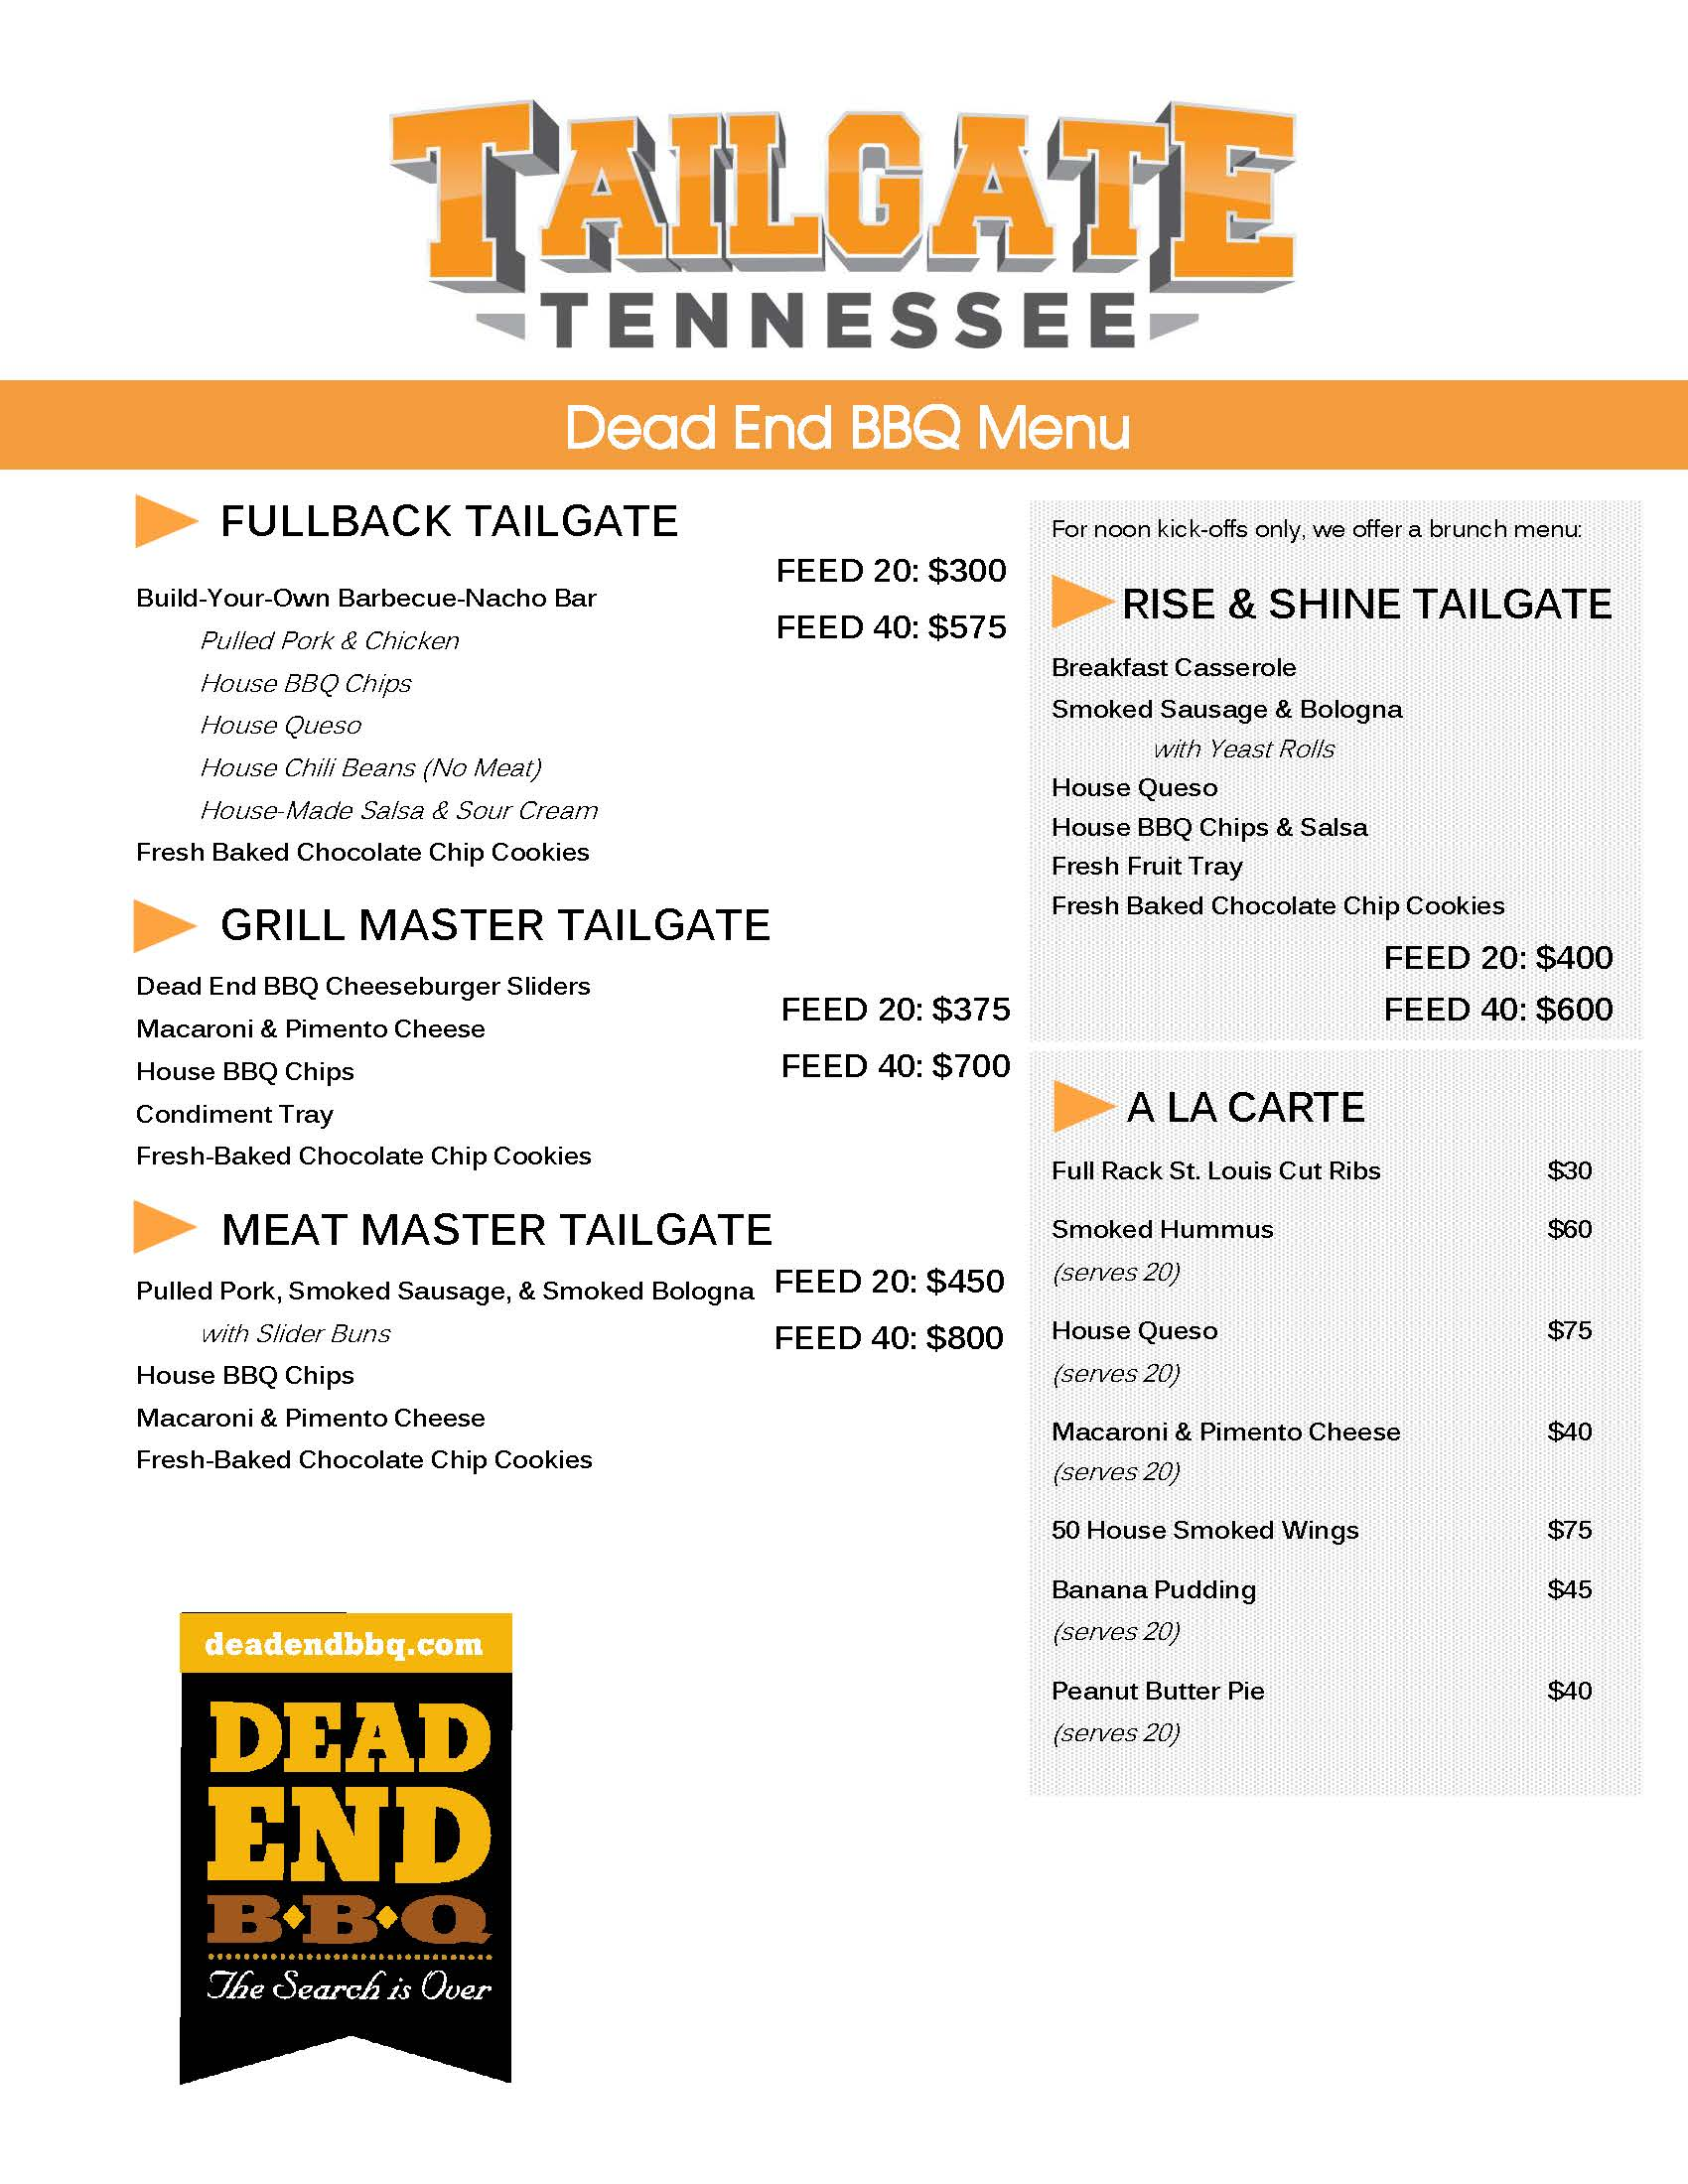 Dead End BBQ 2019 Catering Menu